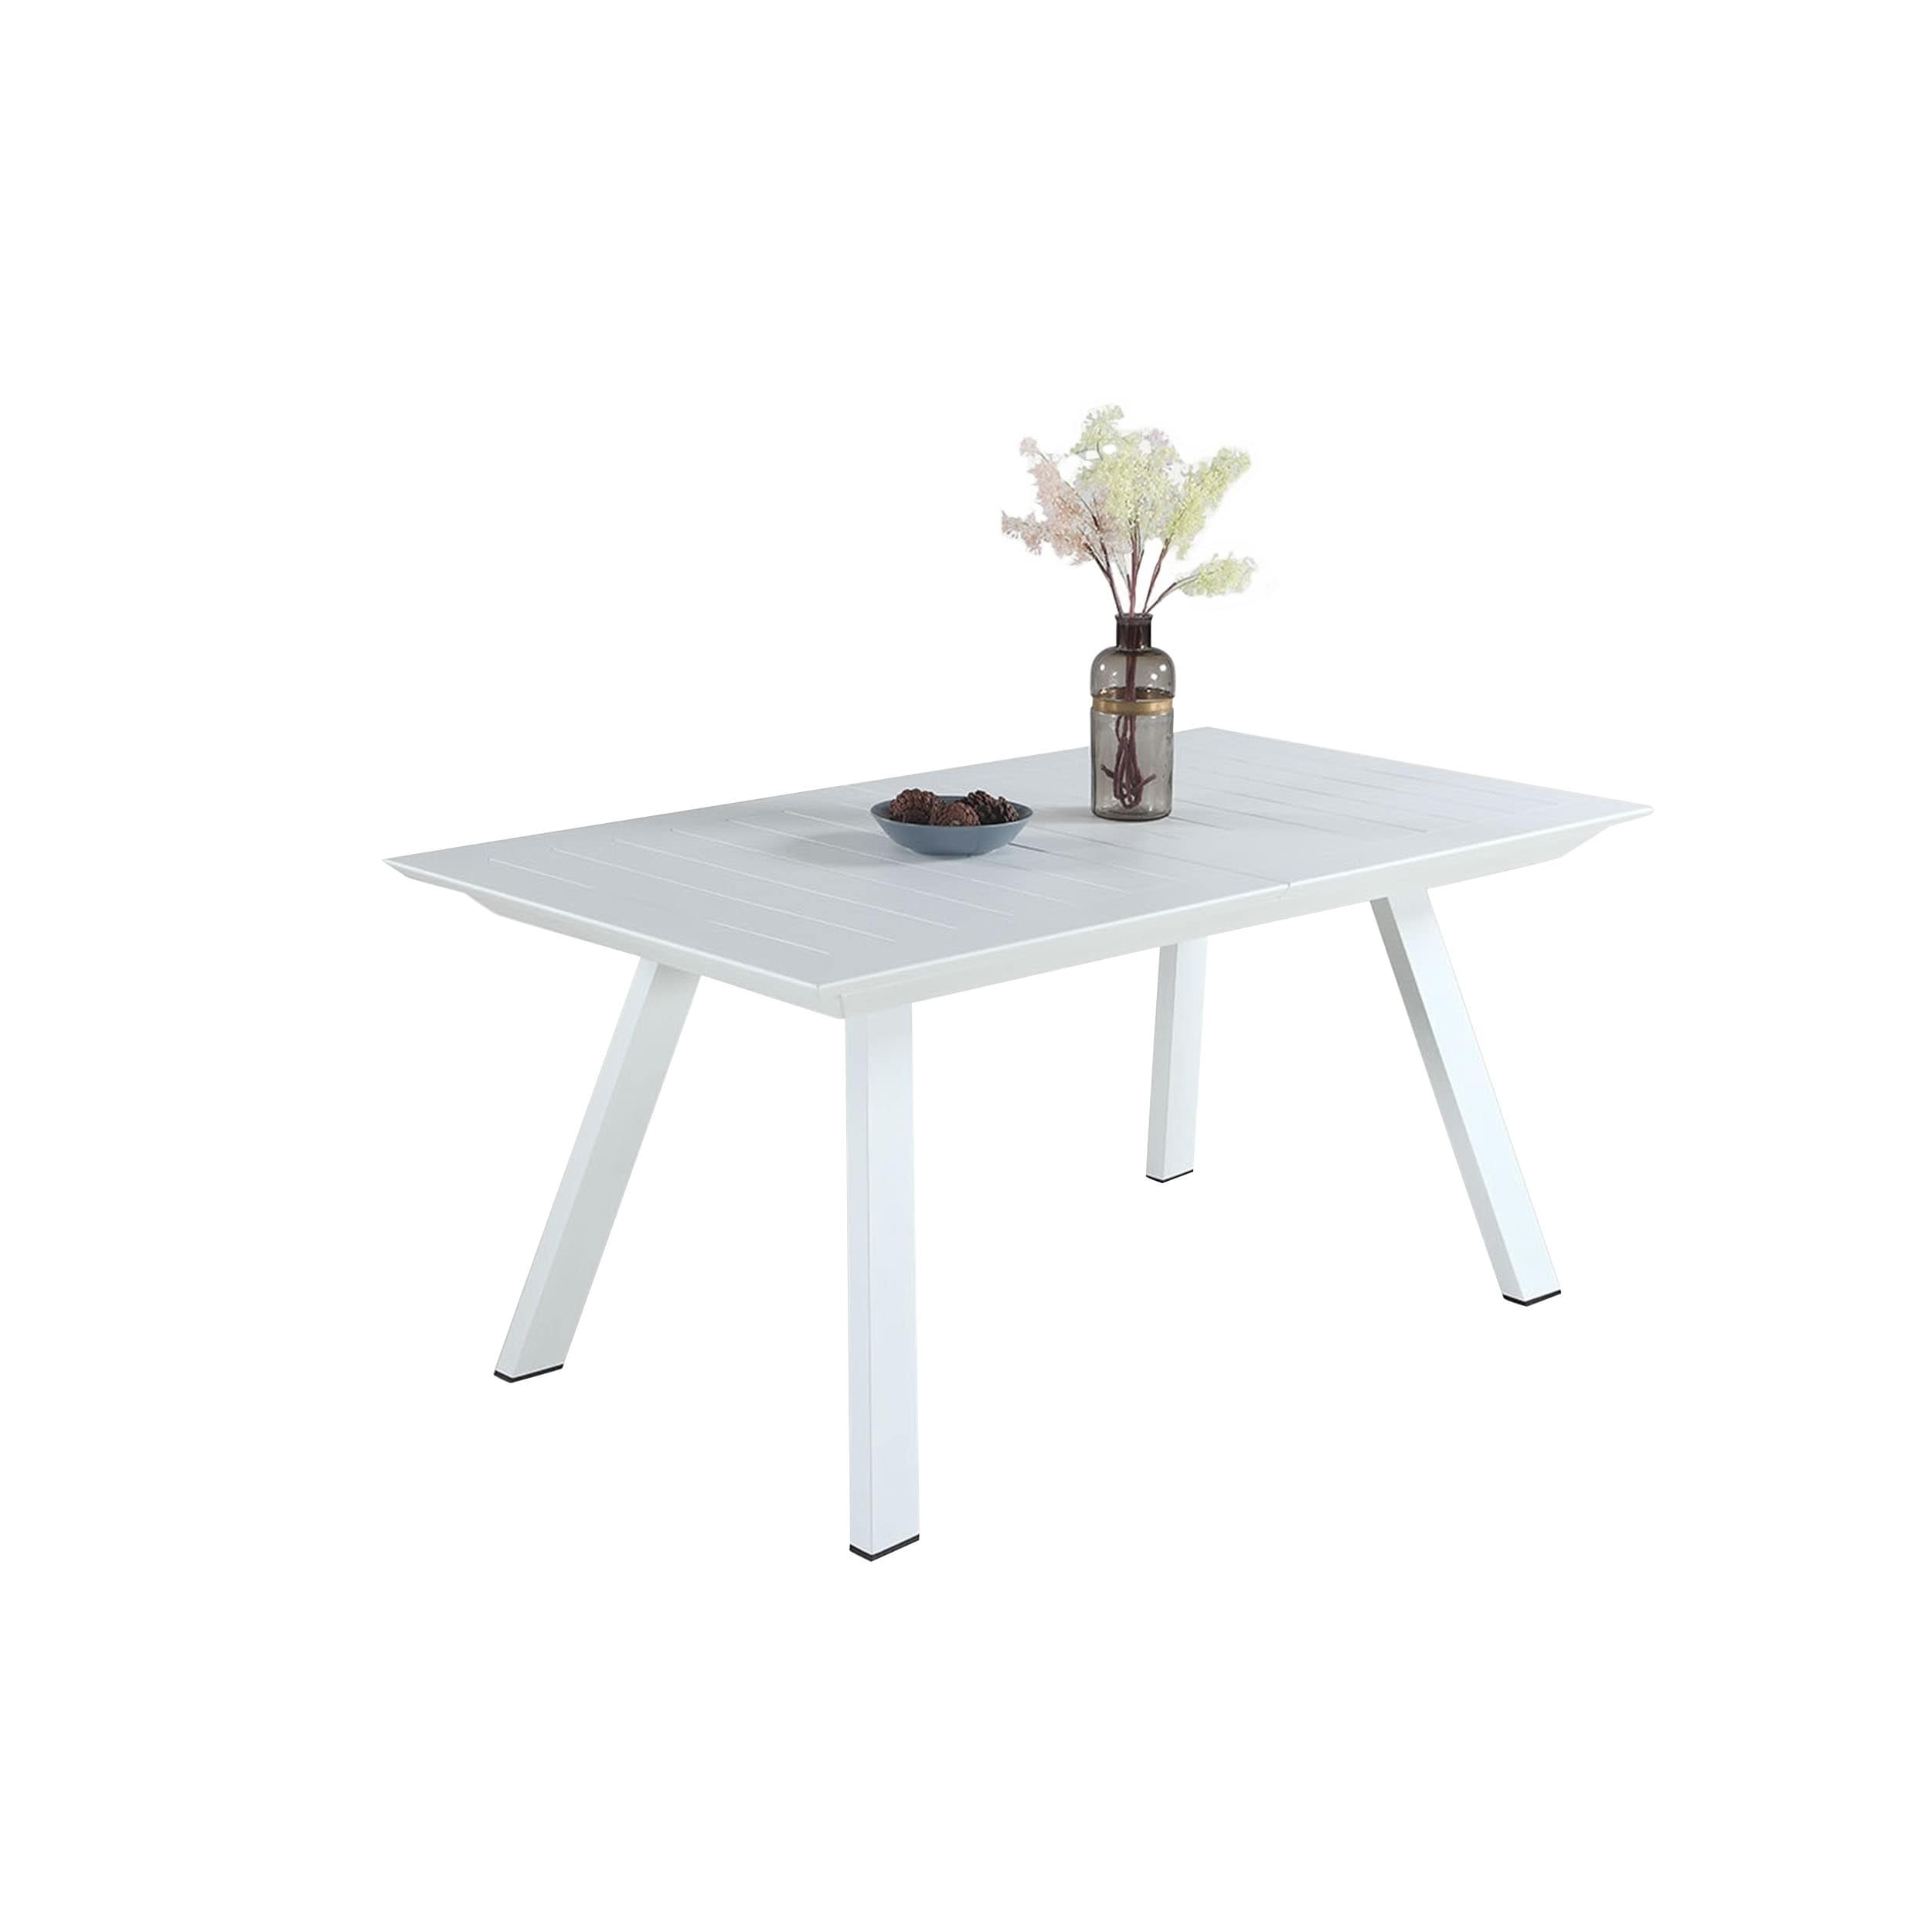 Shop Somette Melbourne Matte White Dining Set With Extension Table And 4 Low Back Chairs